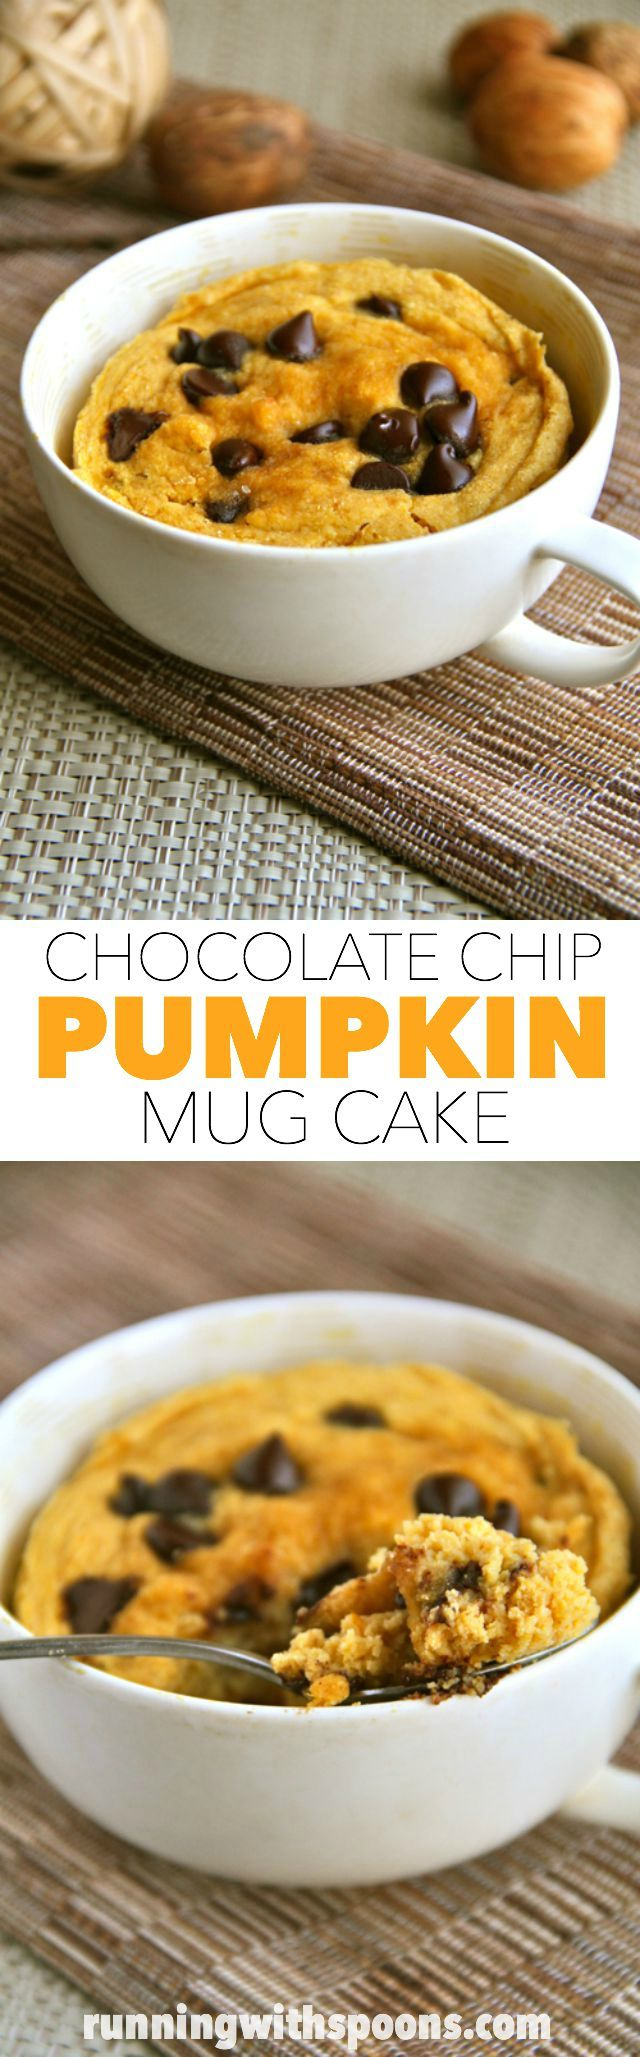 Chocolate Chip Pumpkin Mug Cake -- soft, fluffy, and crazy delicious! Whip up this gluten-free mug cake in under 5 minutes for a healthy and delicious treat! || runningwithspoons.com #pumpkin #fall